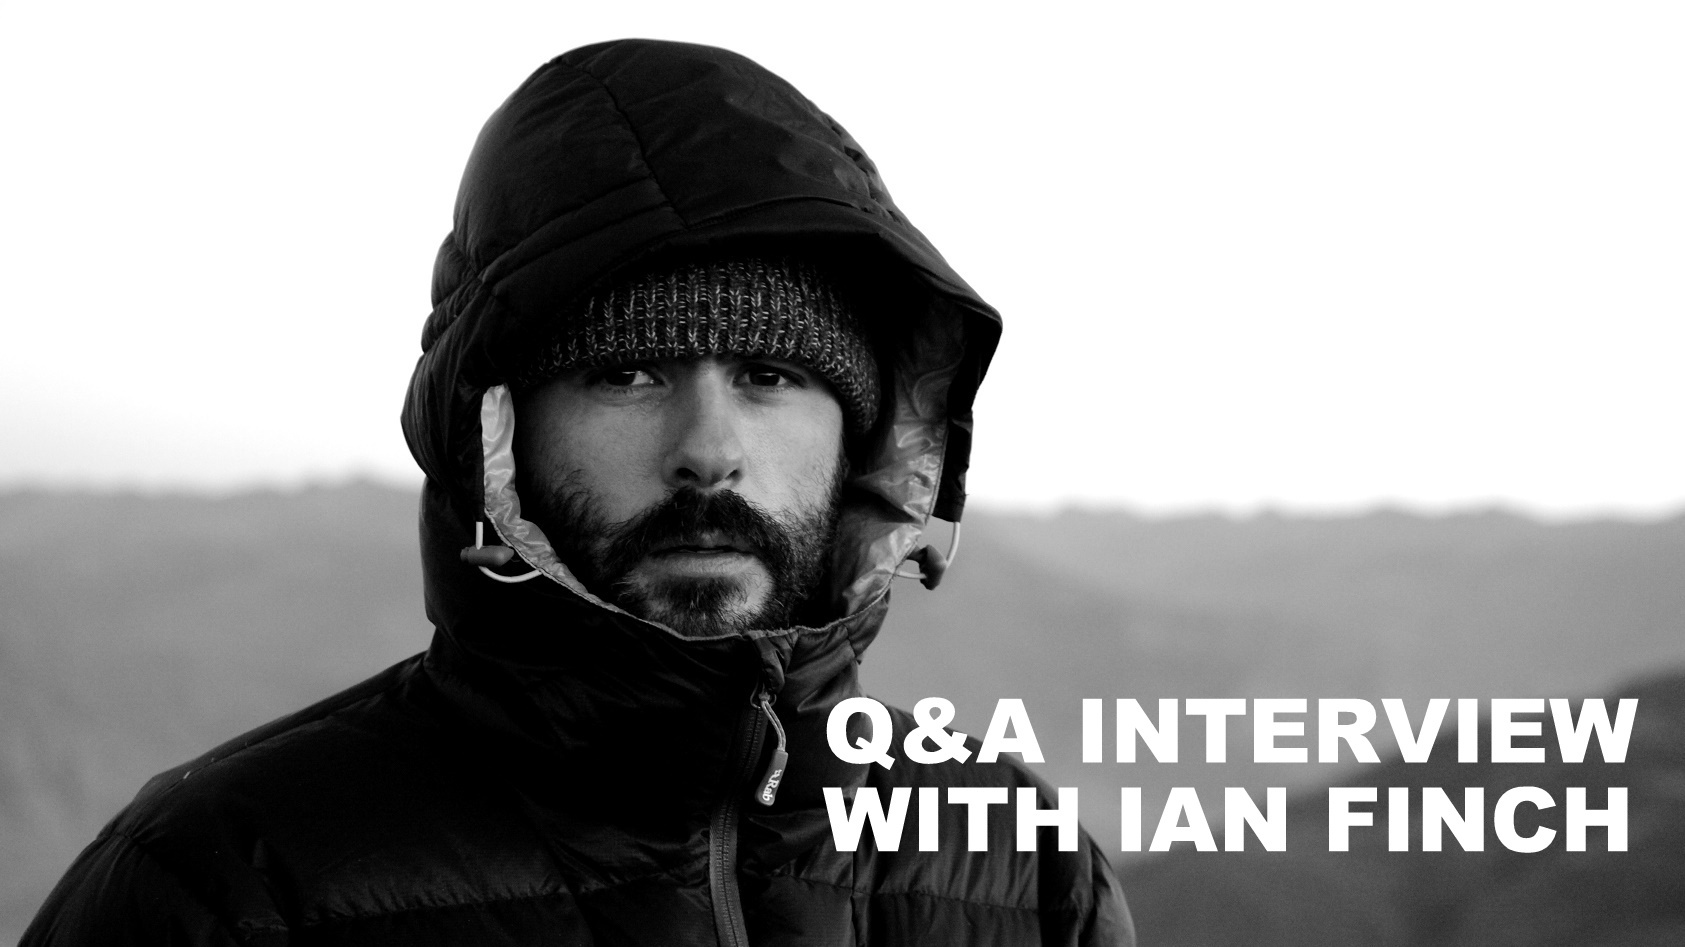 Q&A INTERVIEW WITH IAN FINCH